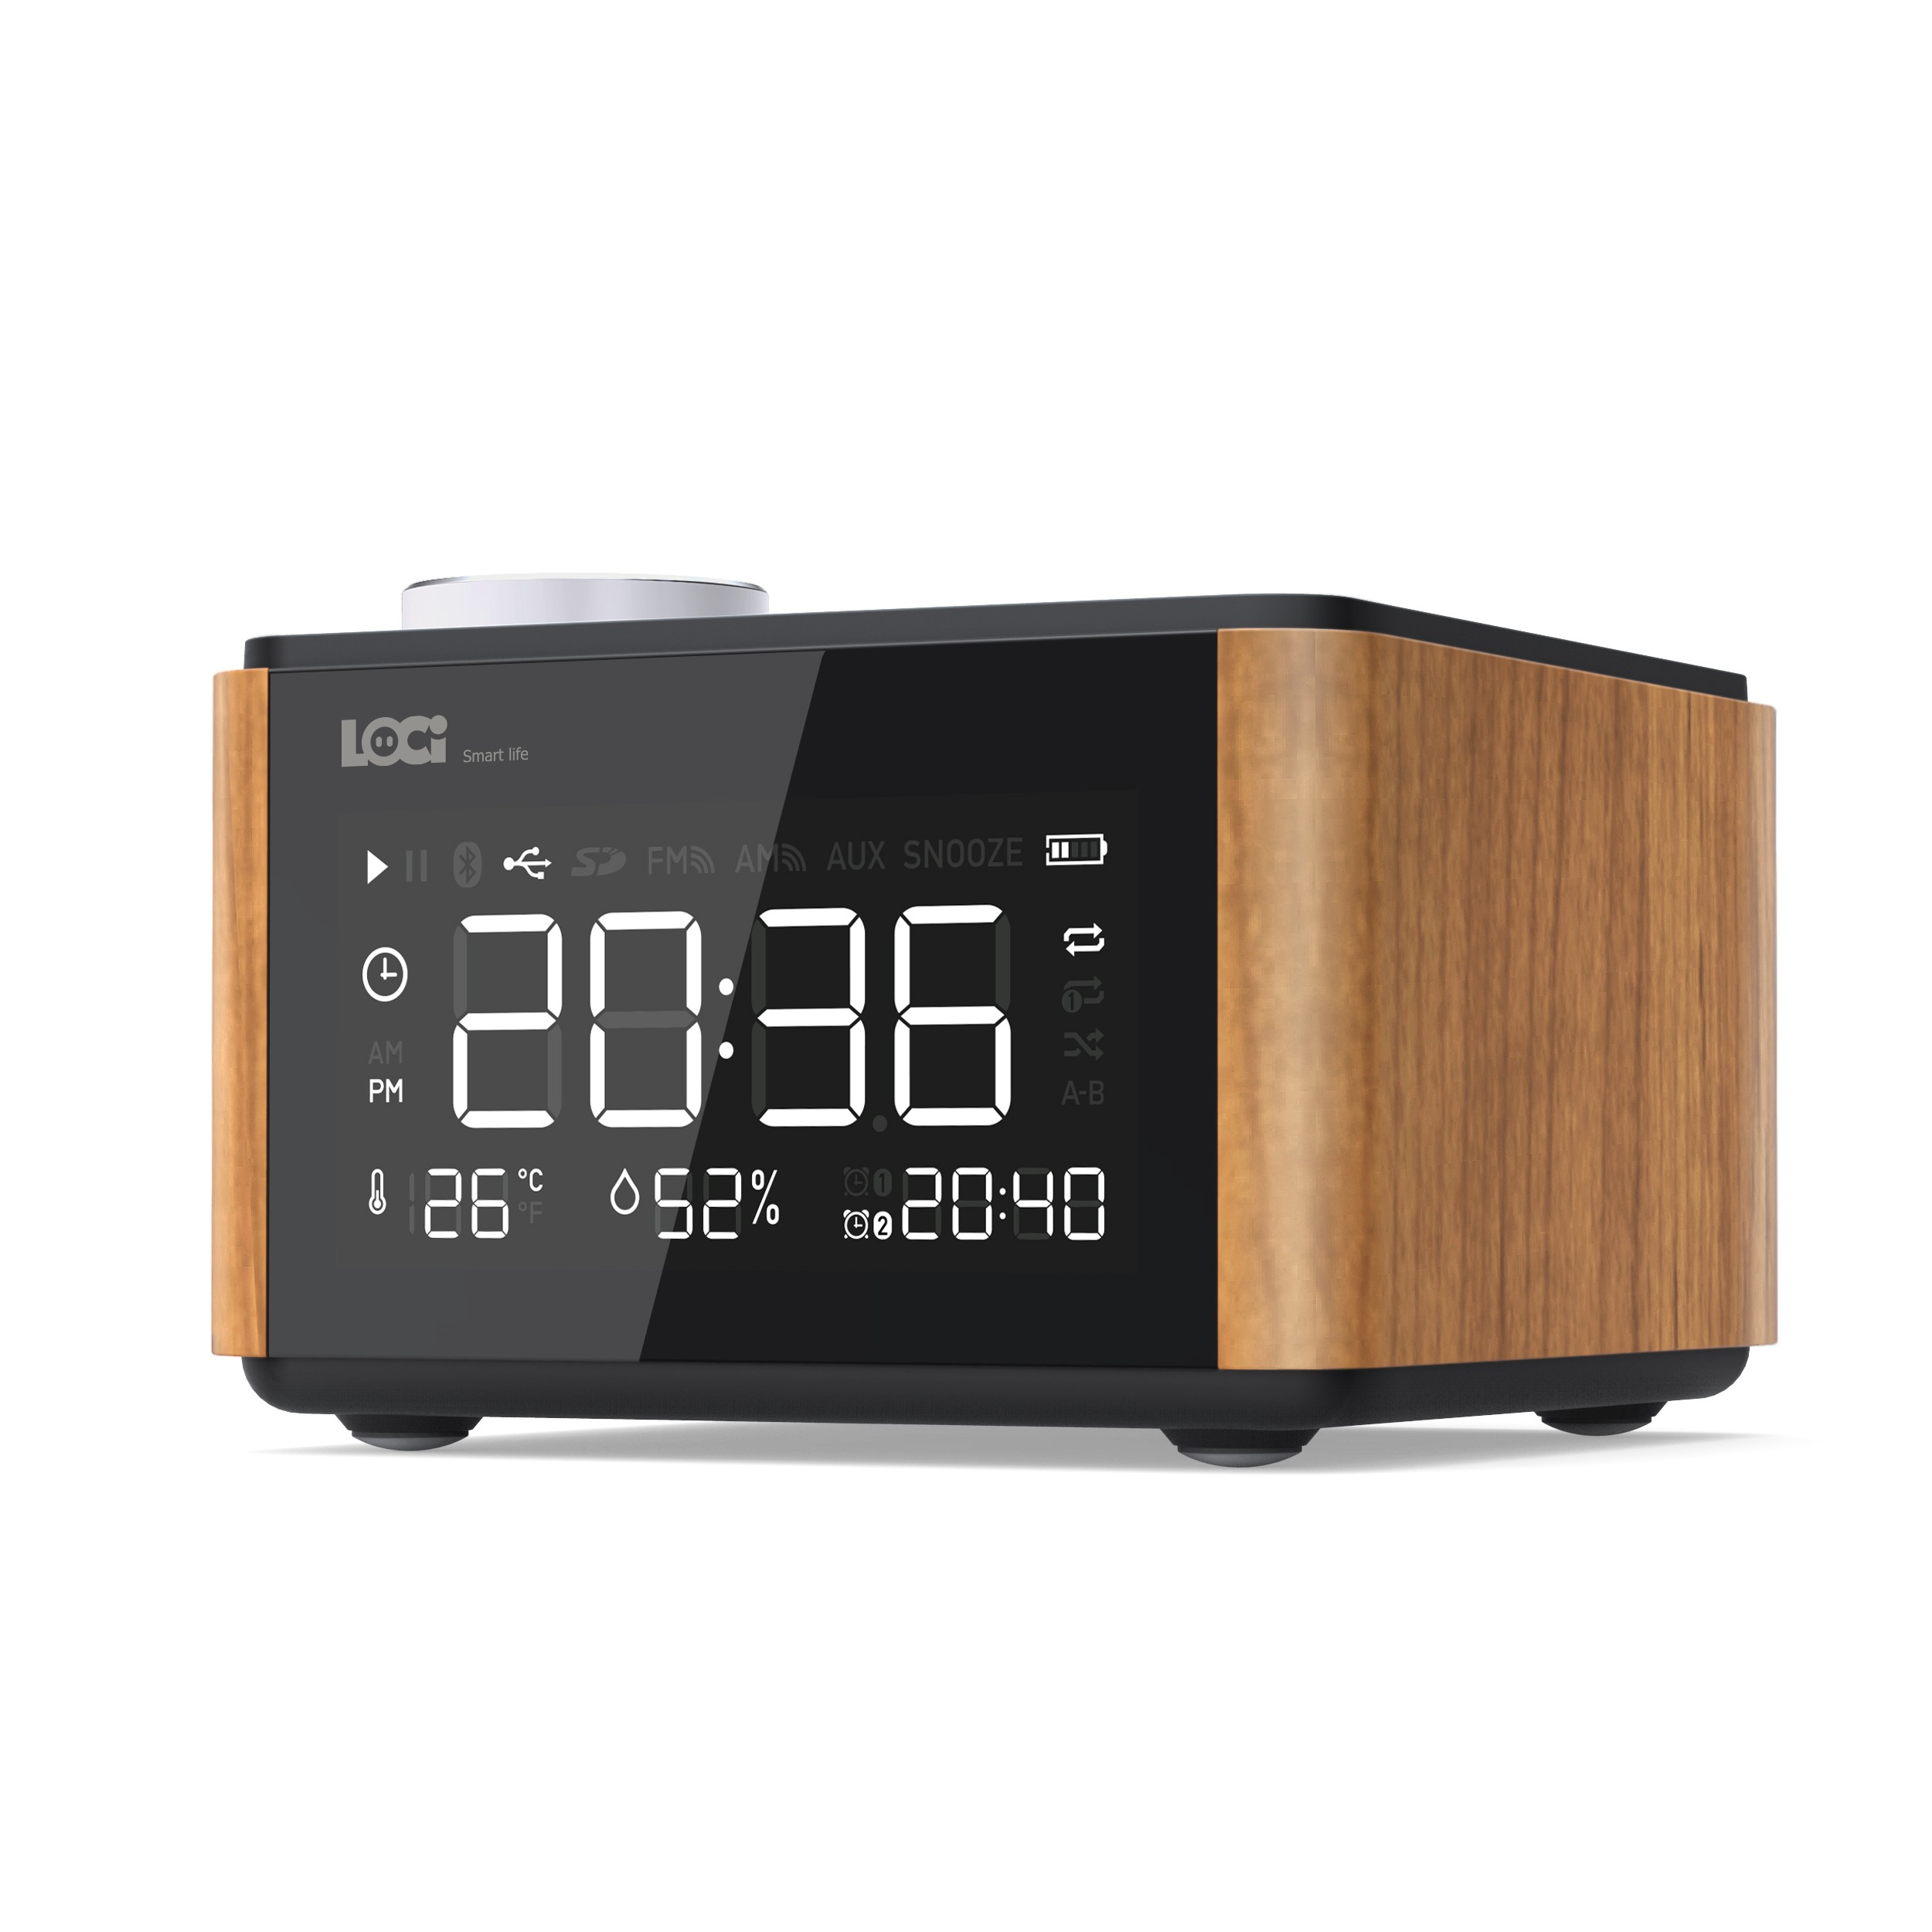 HC775HC4466 - Retro Design Radio, DAB/DAB+